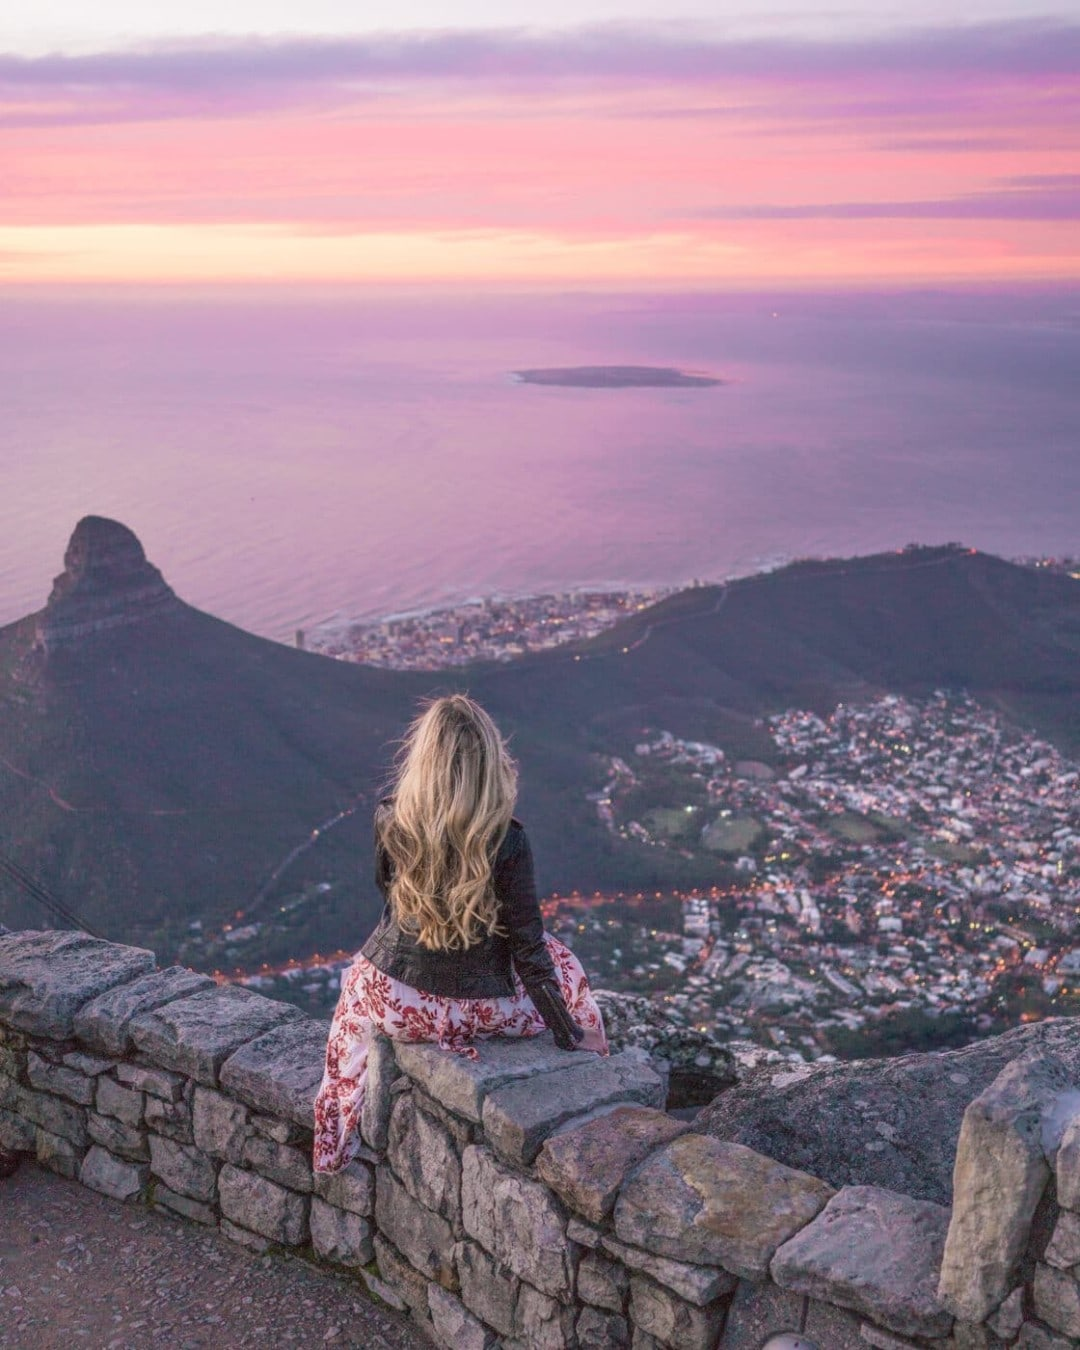 Girl sitting at the top of table mountain at sunset overlooking Cape Town, South Africa